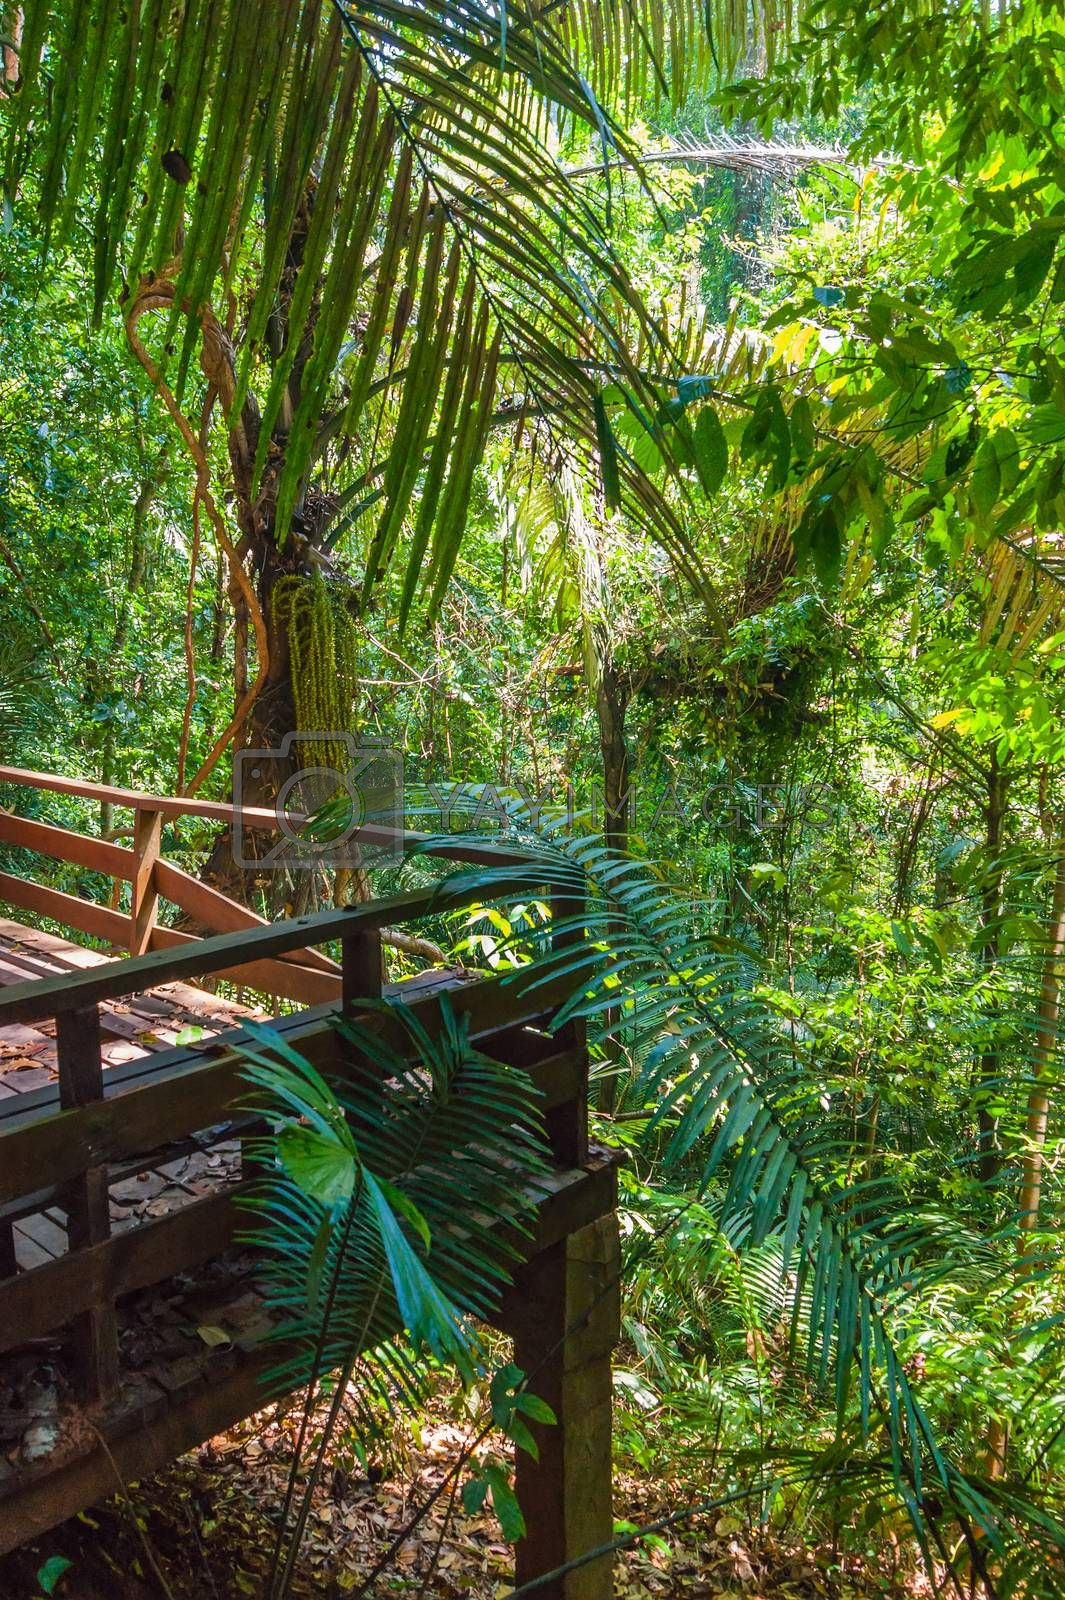 Royalty free image of tropical jungles of South East Asia by oleg_zhukov